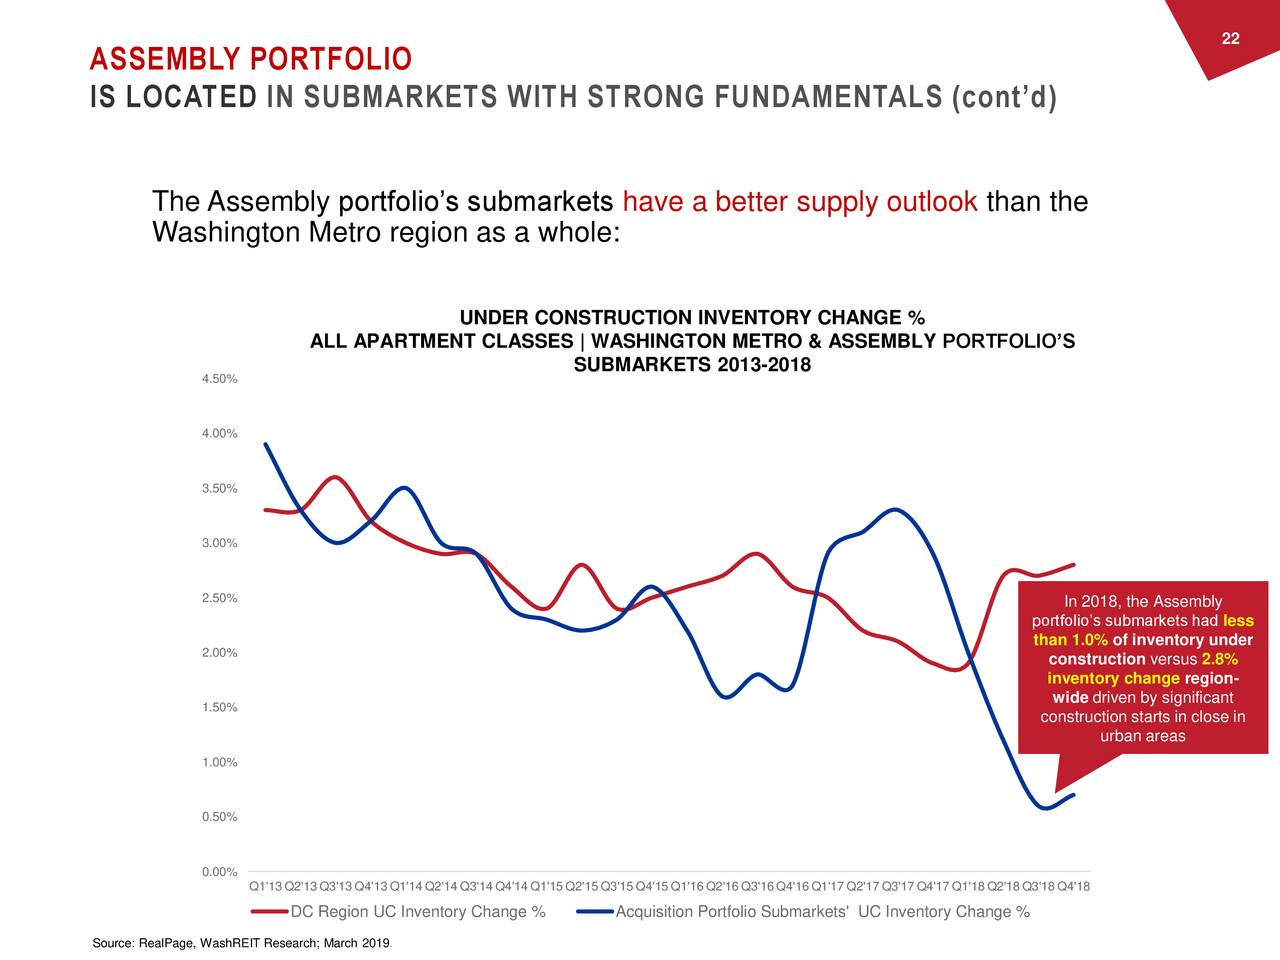 ASSEMBLY PORTFOLIO IS LOCATED IN SUBMARKETS WITH STRONG FUNDAMENTALS (cont'd) The Assembly portfolio's submarkets have a better supply outlook than the Washington Metro region as a whole: UNDER CONSTRUCTION INVENTORY CHANGE % ALL APARTMENT CLASSES | WASHINGTON METRO & ASSEMBLY PORTFOLIO'S SUBMARKETS 2013-2018 4.50% 4.00% 3.50% 3.00% 2.50% In 2018, the Assembly portfolio's submarkets had less than 1.0% of inventory under 2.00% construction versus 2.8% inventory change region- 1.50% wide driven by significant construction starts in close in urban areas 1.00% 0.50% 0.00% Q1'13 Q2'13 Q3'13 Q4'13 Q1'14 Q2'14 Q3'14 Q4'14 Q1'15 Q2'15 Q3'15 Q4'15 Q1'16 Q2'16 Q3'16 Q4'16 Q1'17 Q2'17 Q3'17 Q4'17 Q1'18 Q2'18 Q3'18 Q4'18 DC Region UC Inventory Change % Acquisition Portfolio Submarkets' UC Inventory Change % Source: RealPage, WashREIT Research; March 2019.